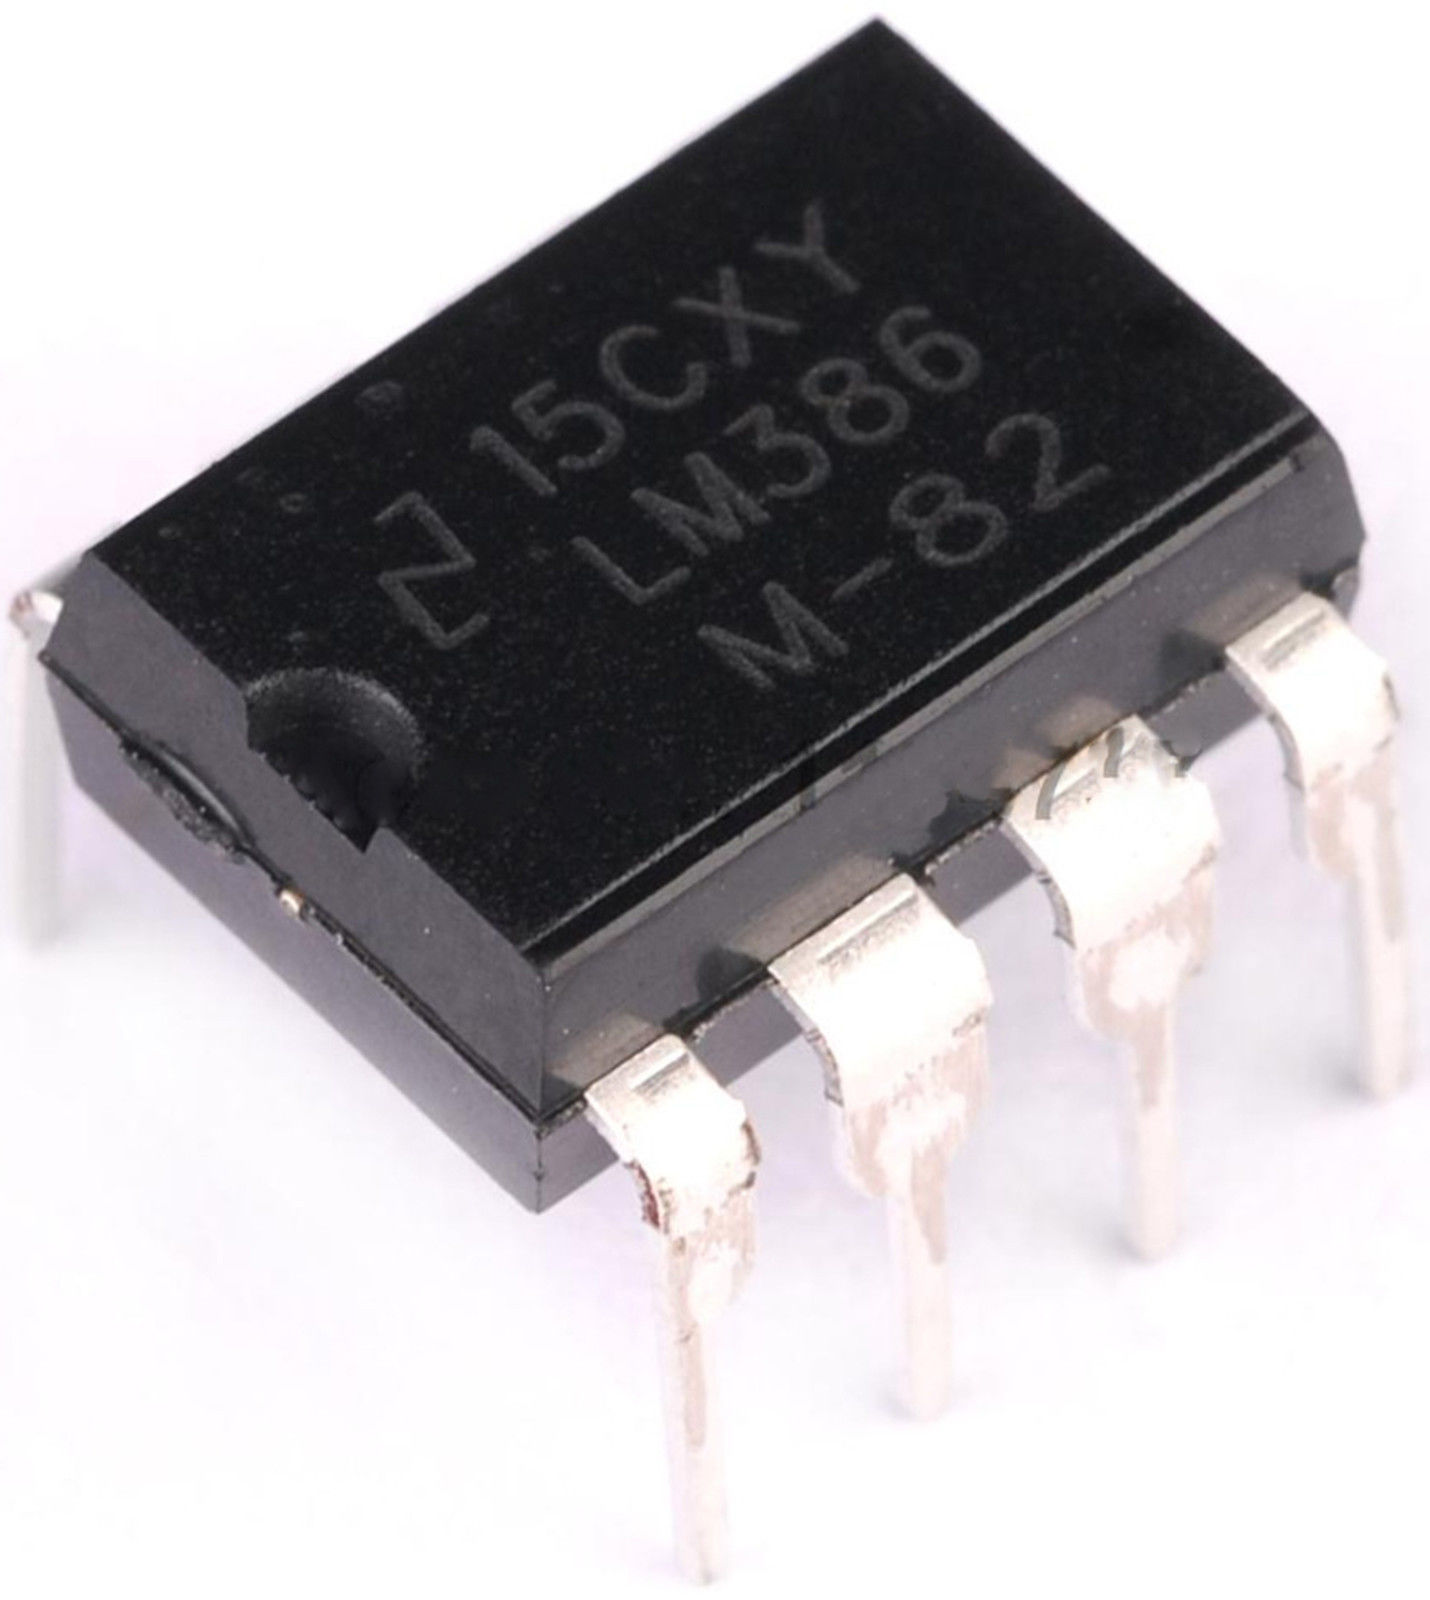 5 X Lm386 Low Voltage Audio Power Amplifier Dip8 All Top Notch Working Operation Of Ic